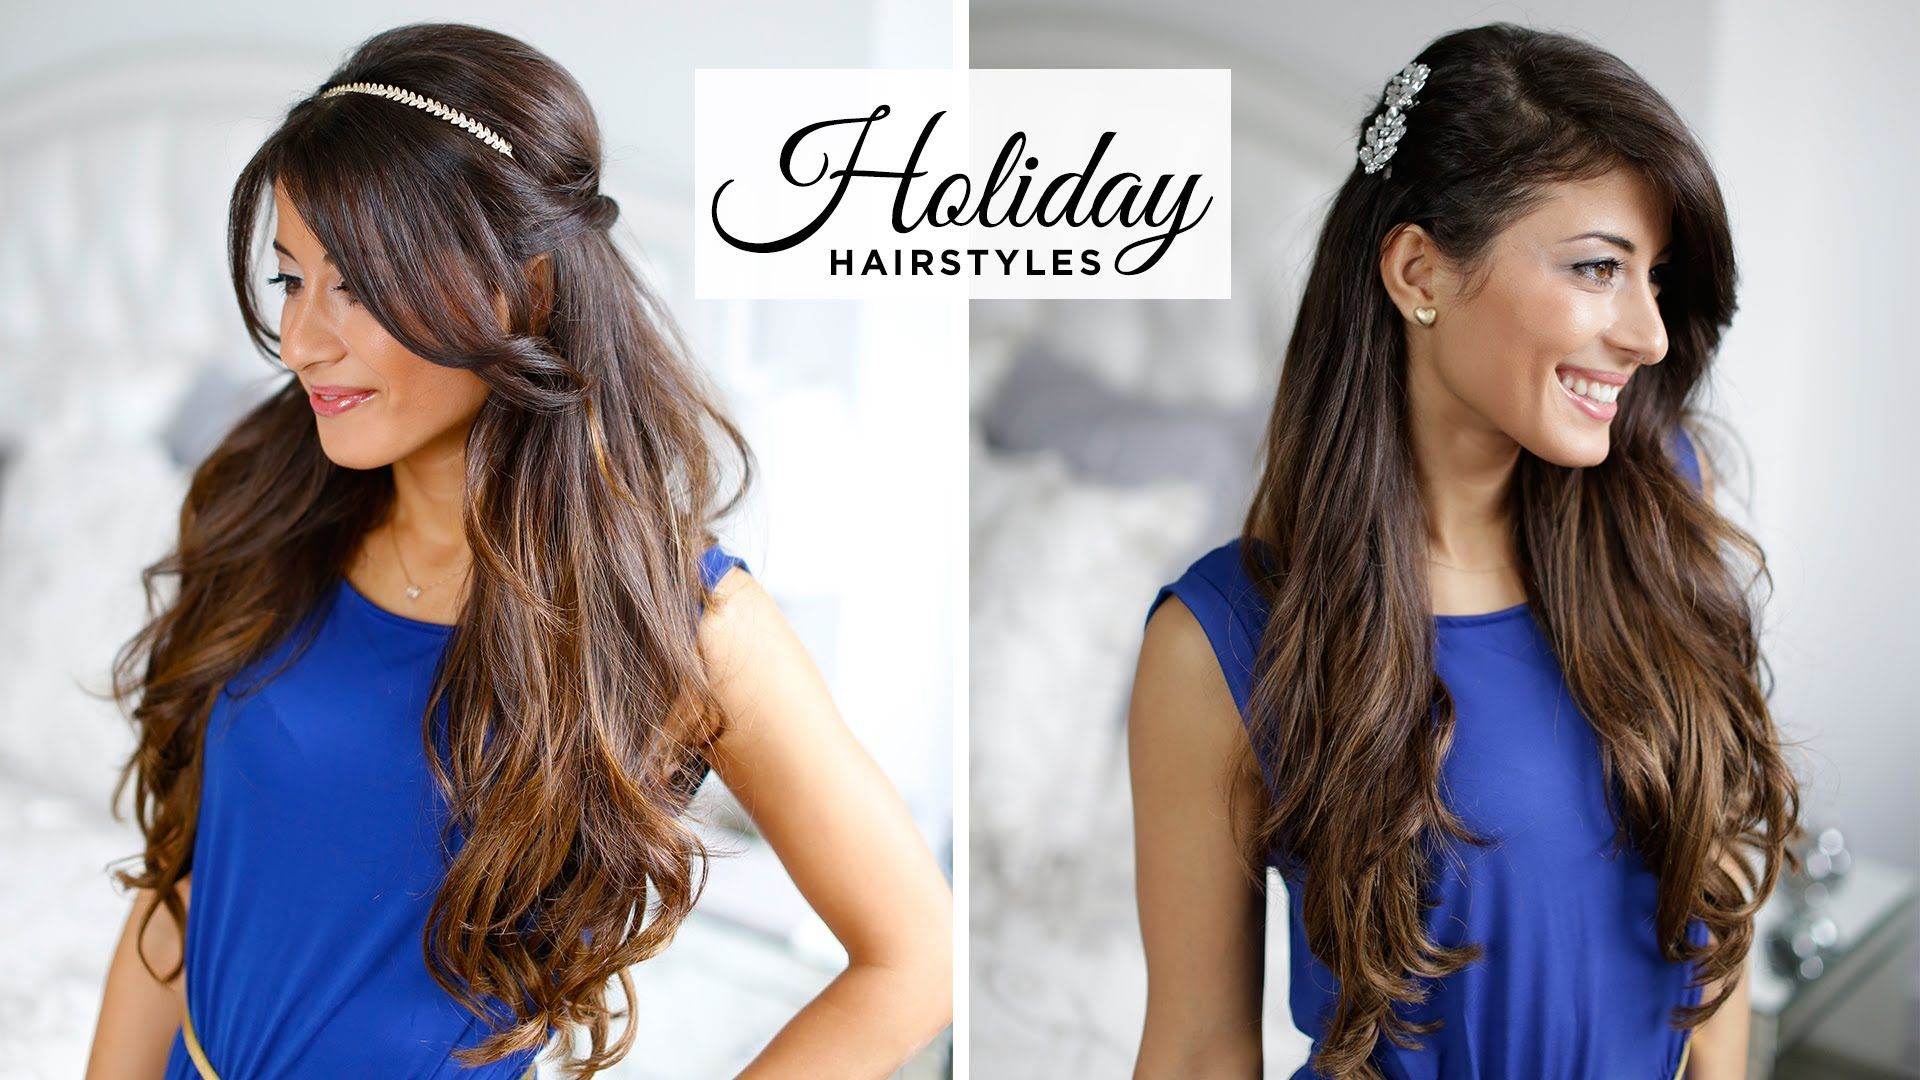 Here are some of my new favorite holiday hairstyles They are cute